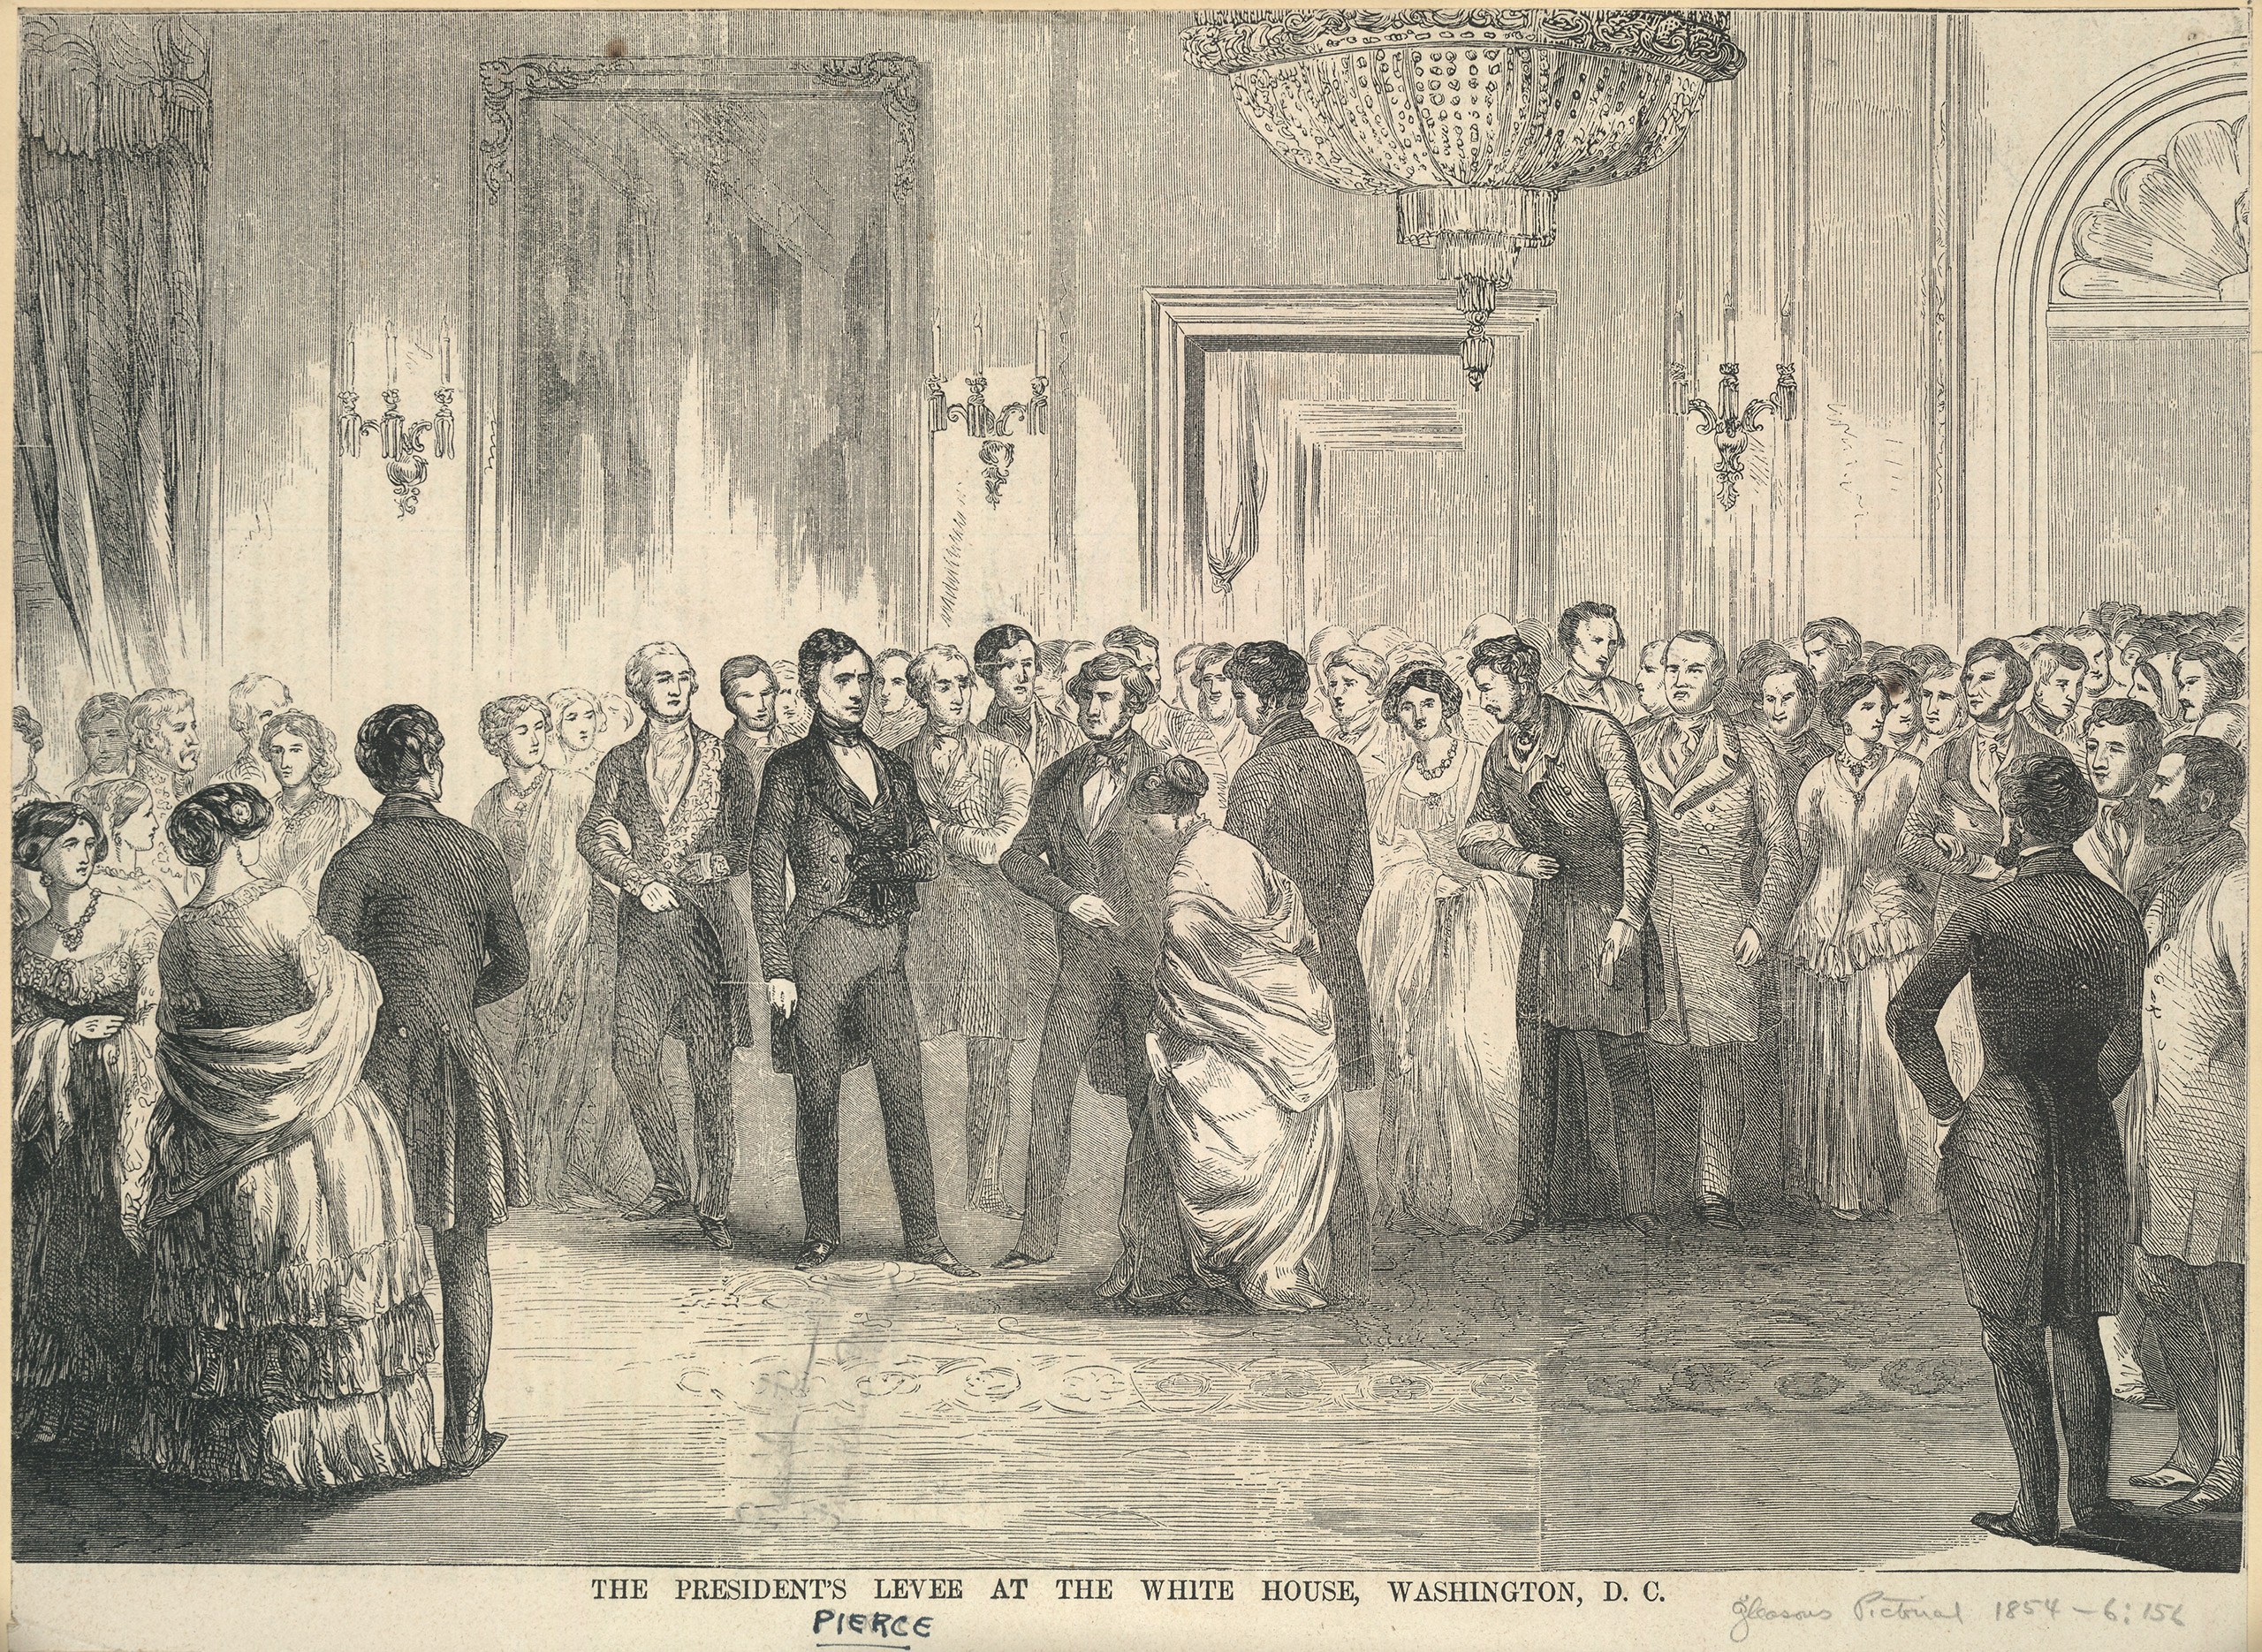 Franklin Pierce's Inaugural reception scene, 1853.